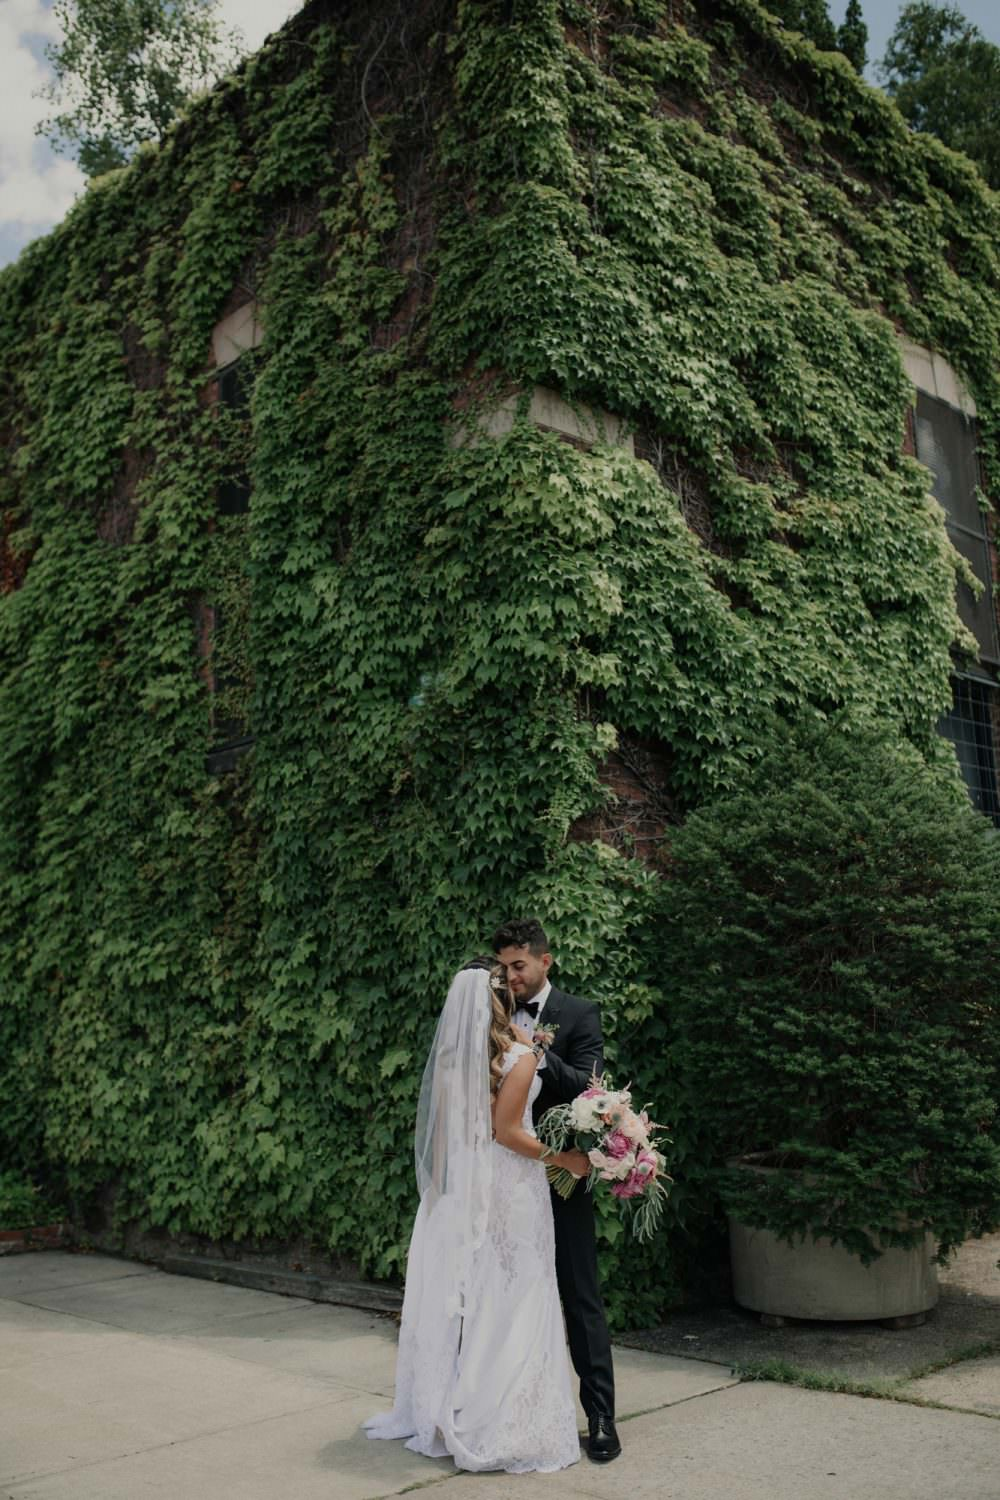 Bride and Groom standing in front of the Ivy covered building, The Foundry